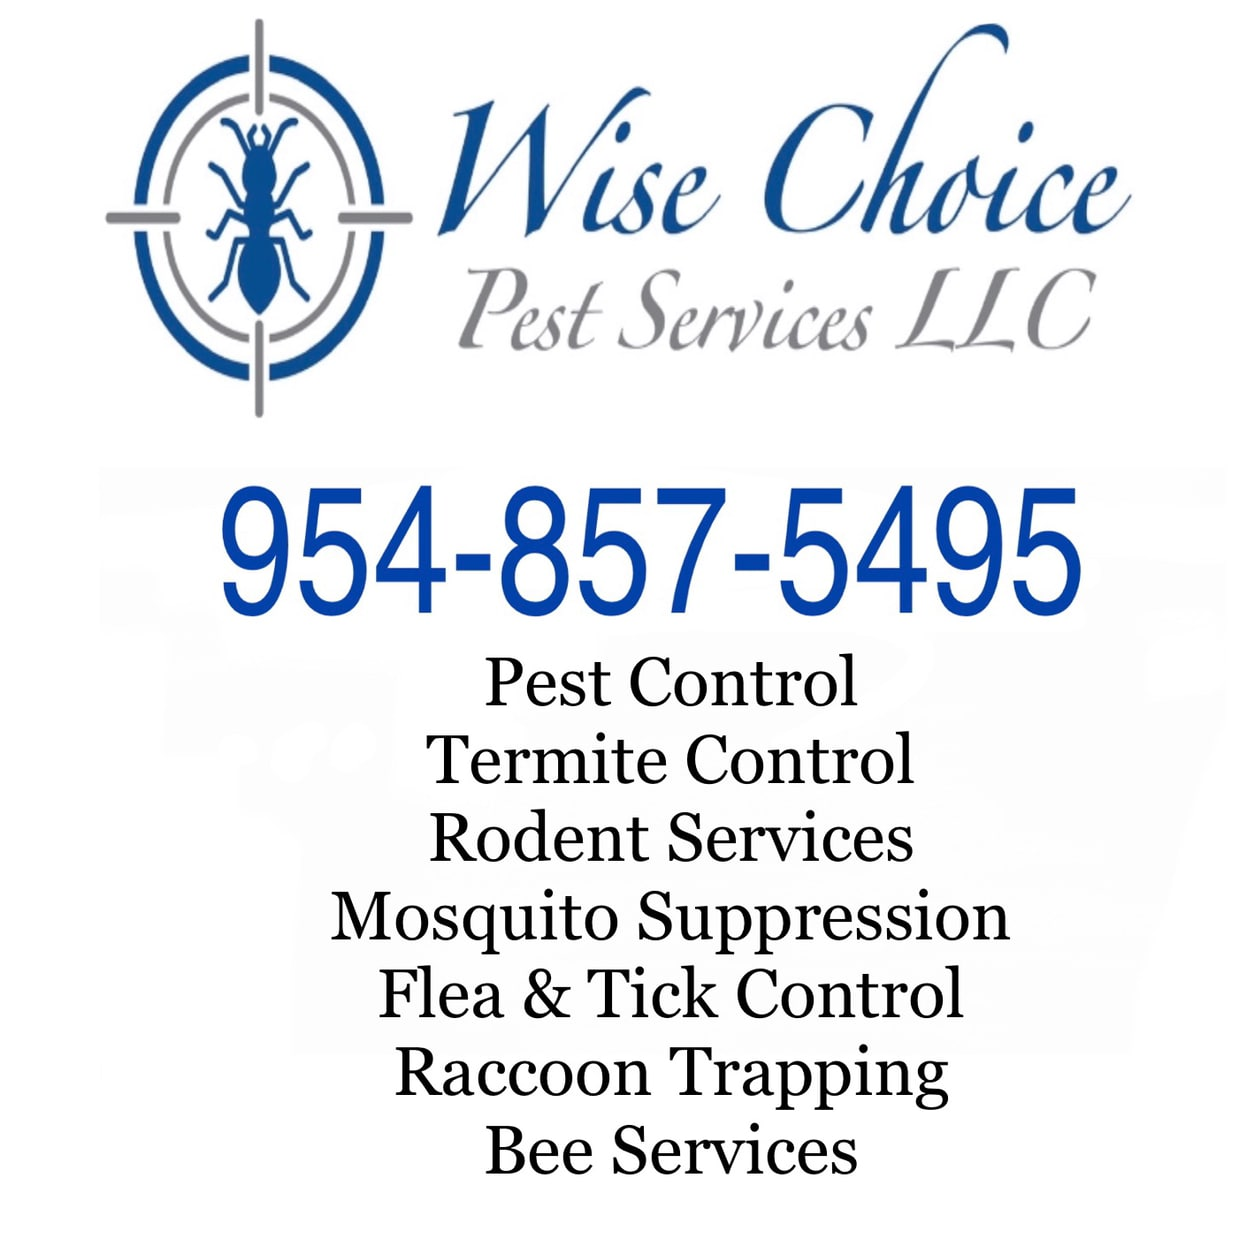 Wise Choice Pest Services LLC